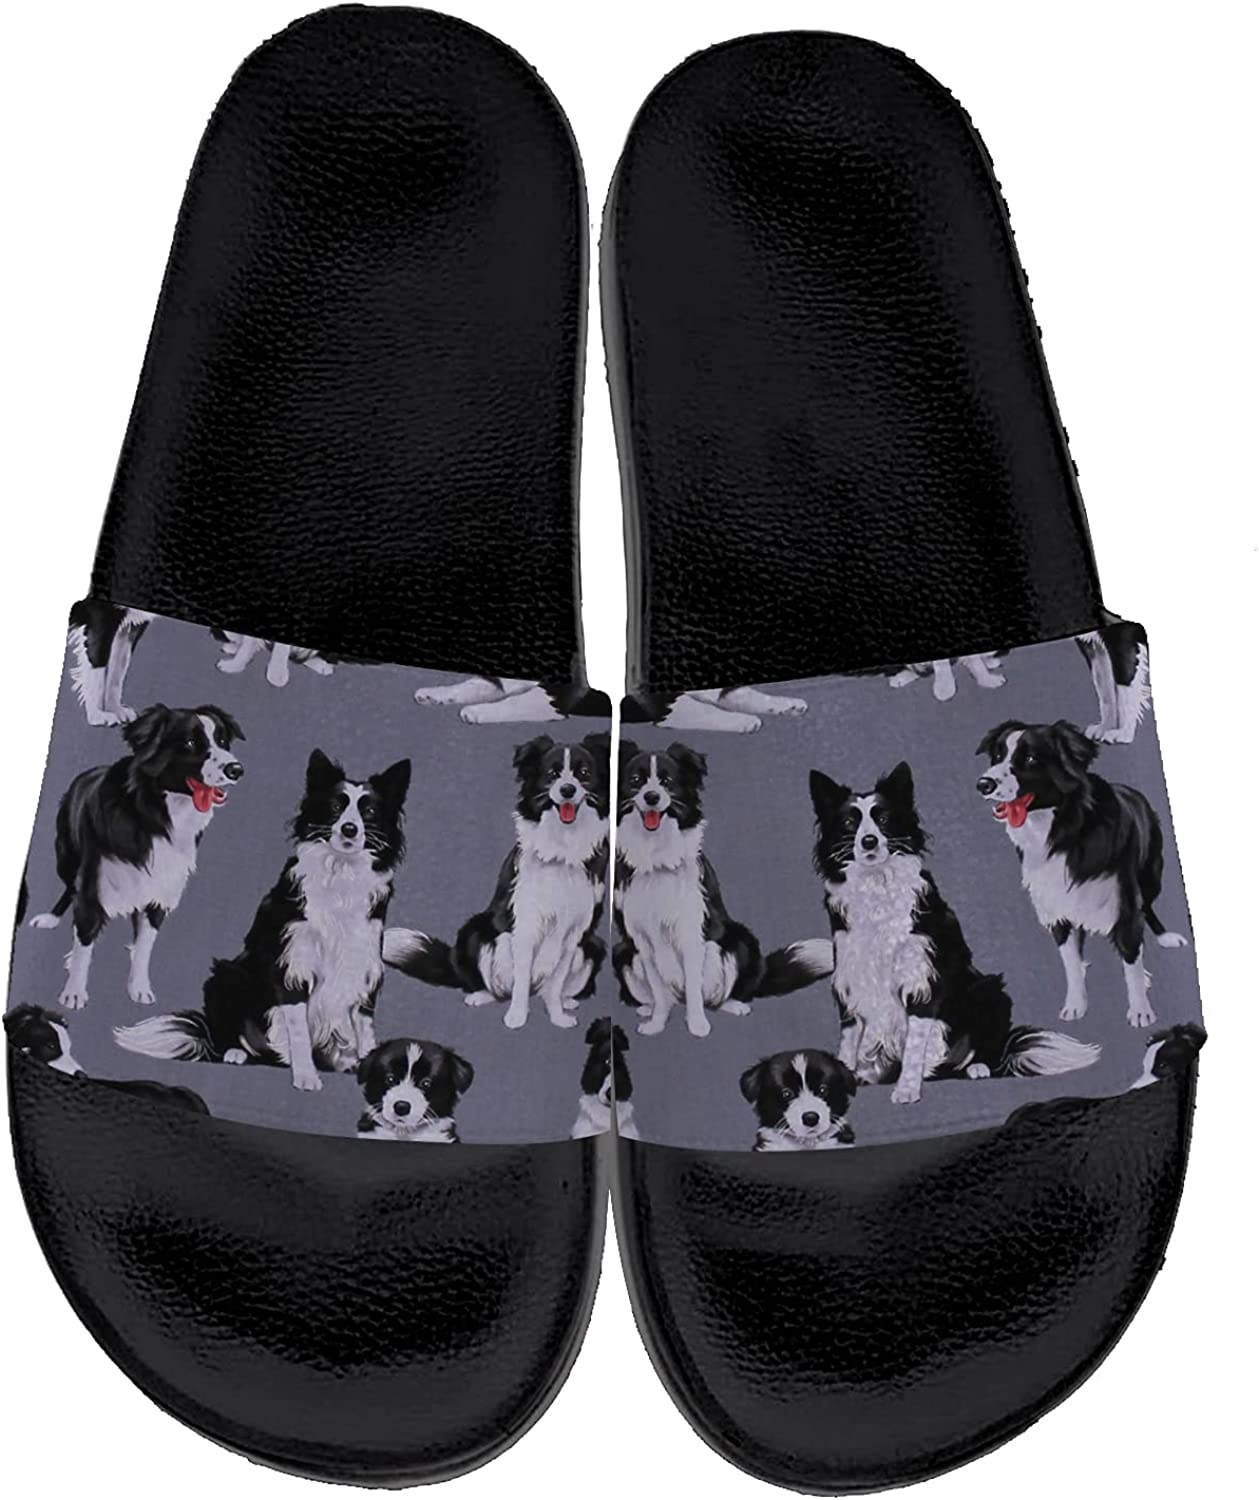 Mens Womens Border Collie Sandals Personalited Lightweight Non-Slip Comfort Beach Slides Slippers Indoor Outdoor Gifts for Friends